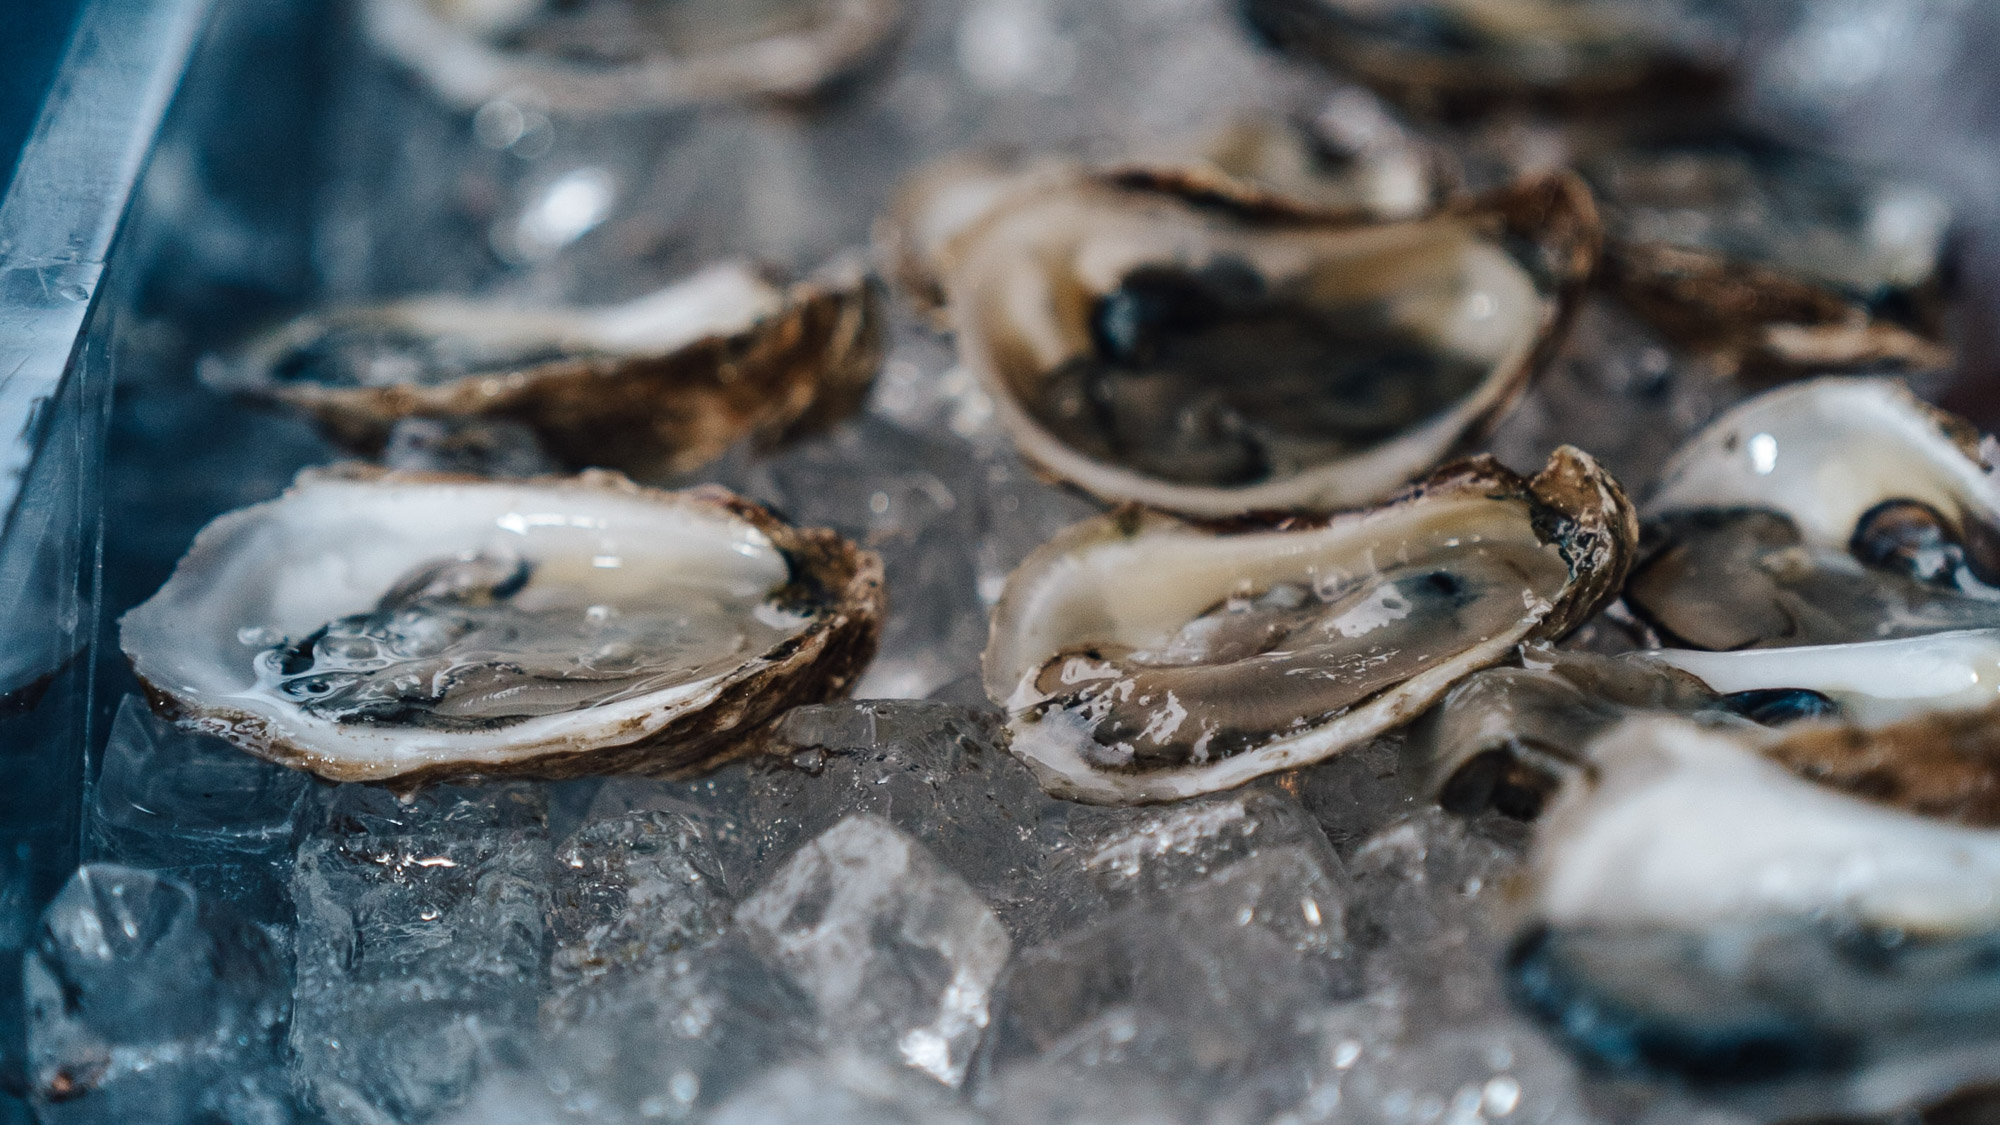 Oysters on the half shell in New Orleans